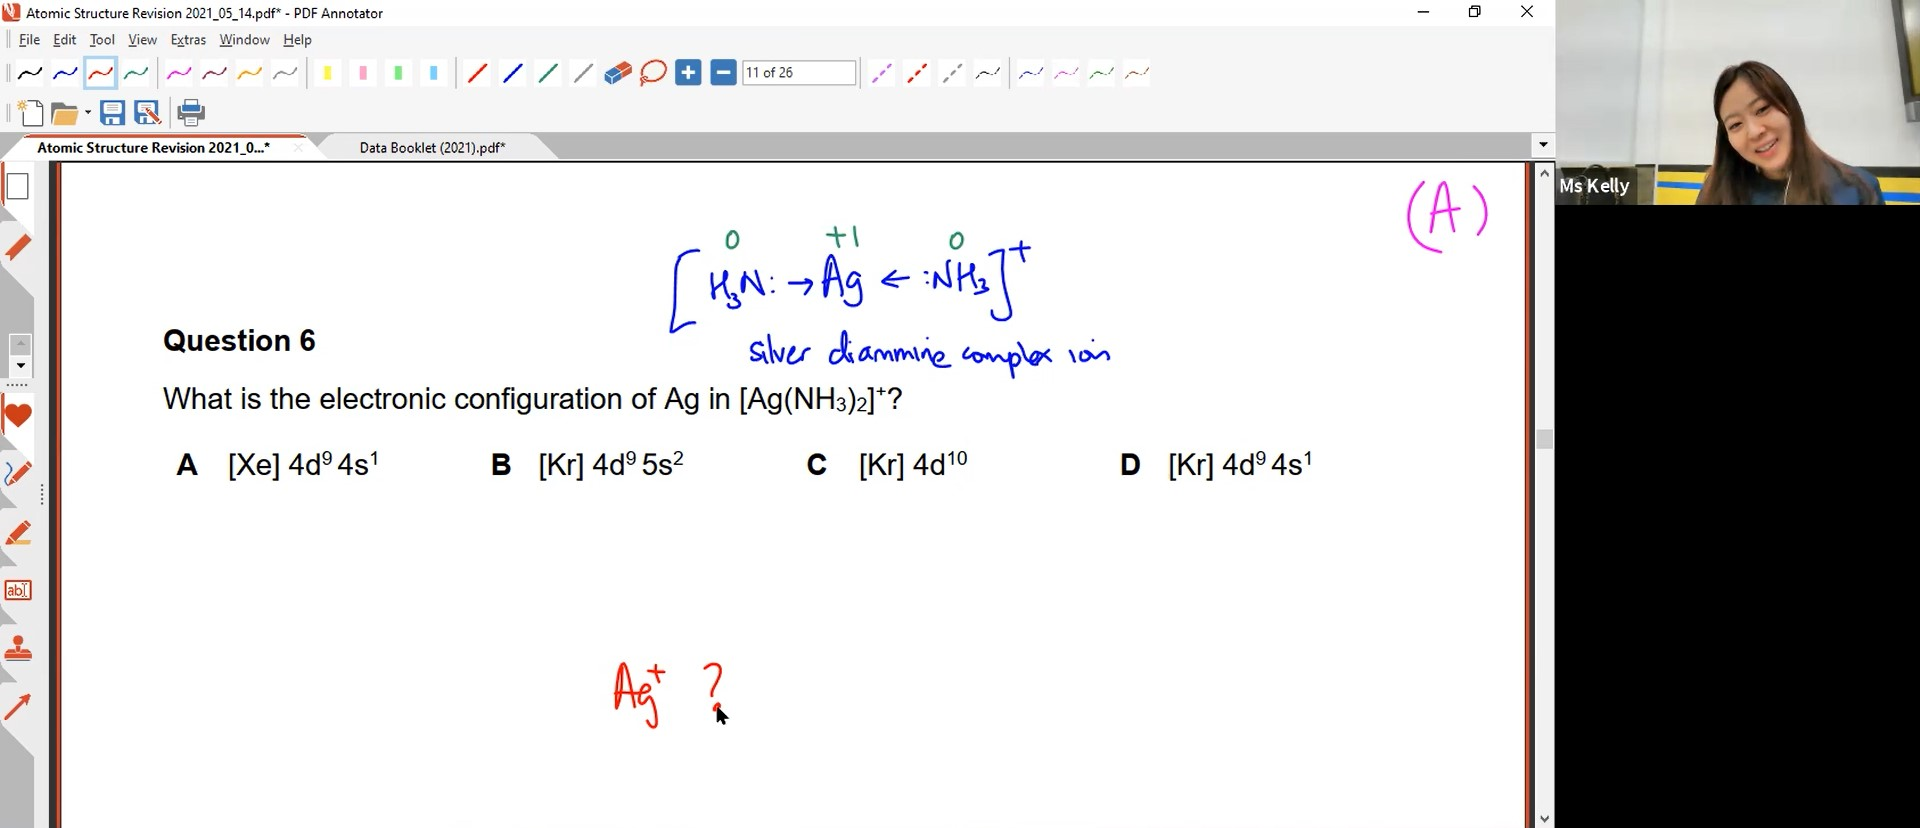 26. Atomic Structure Revision